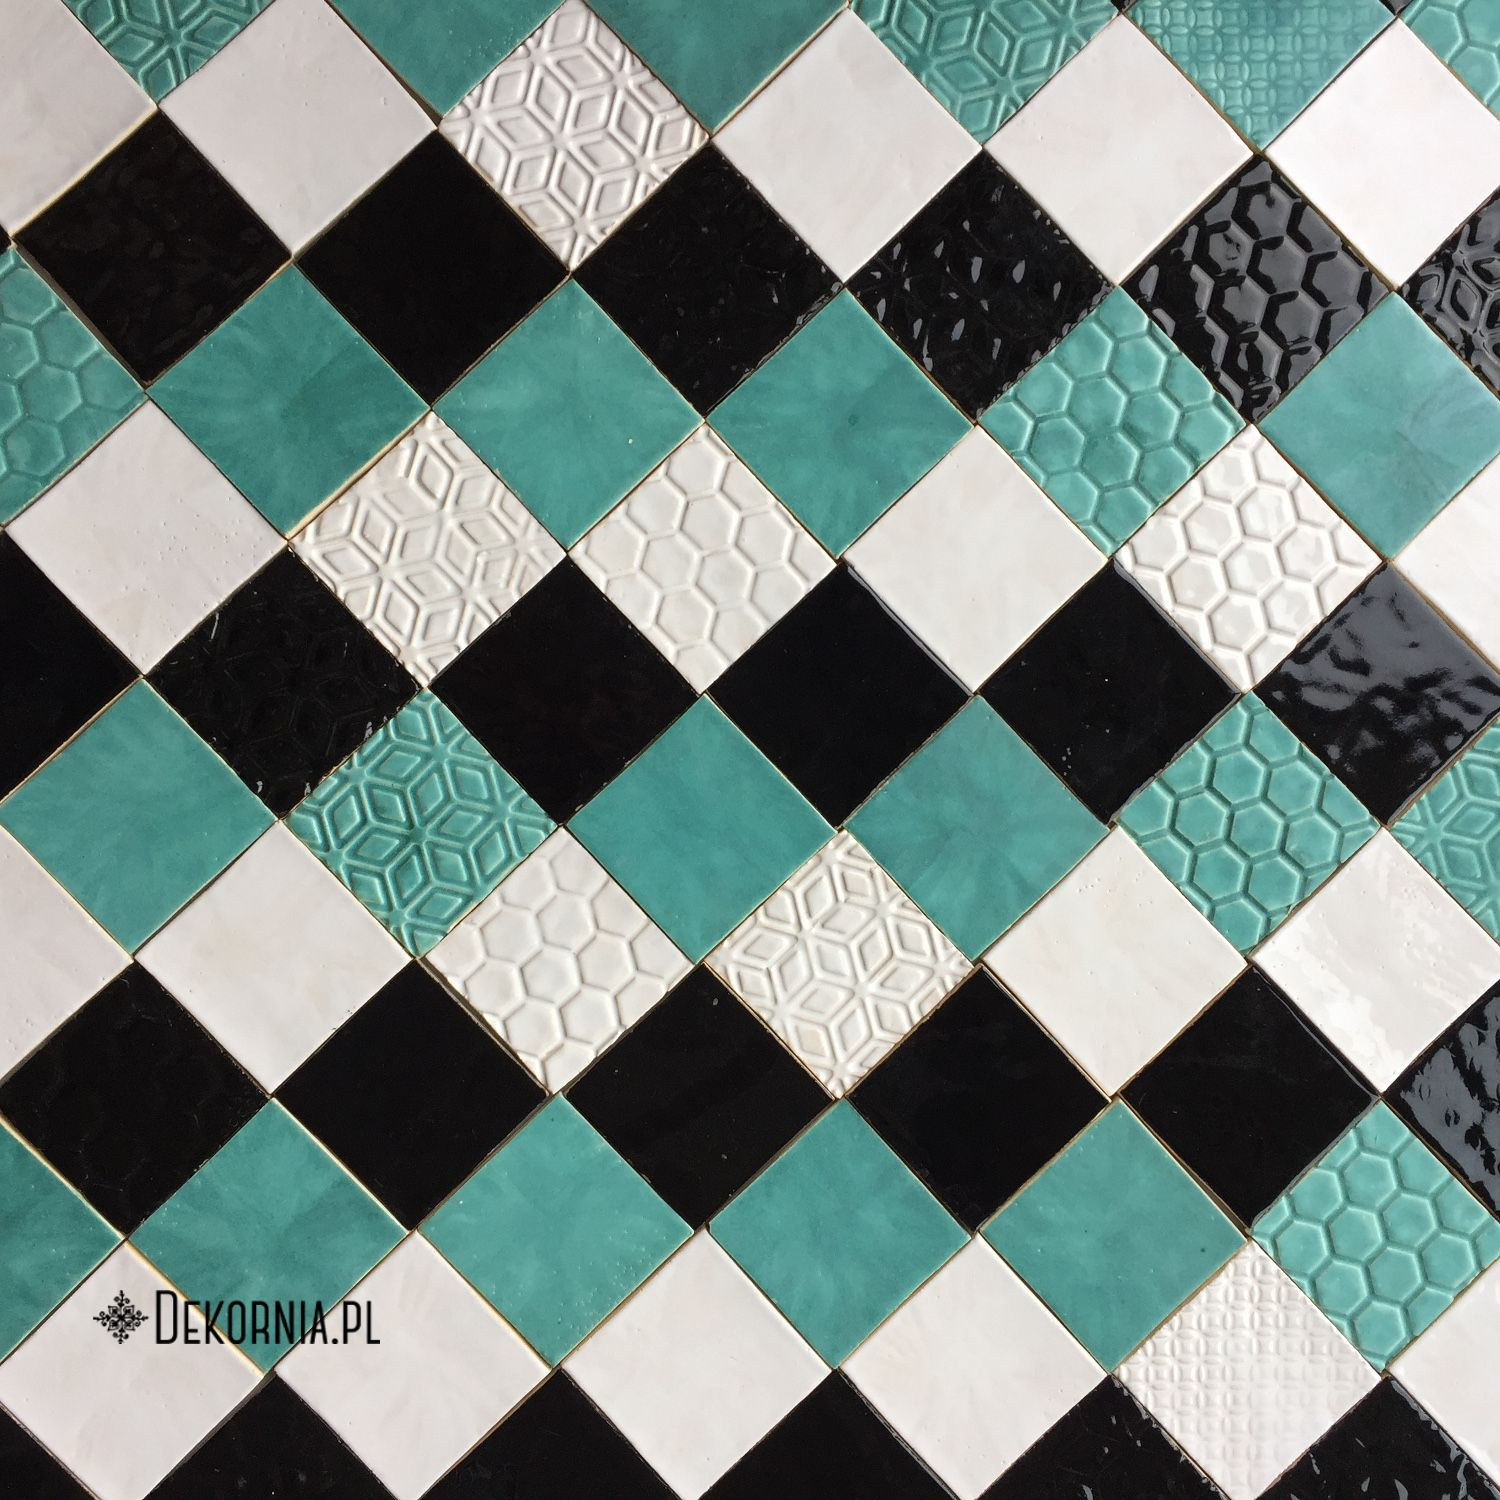 Colorful tiles, handmade ceramic tiles with multiple patterns ...